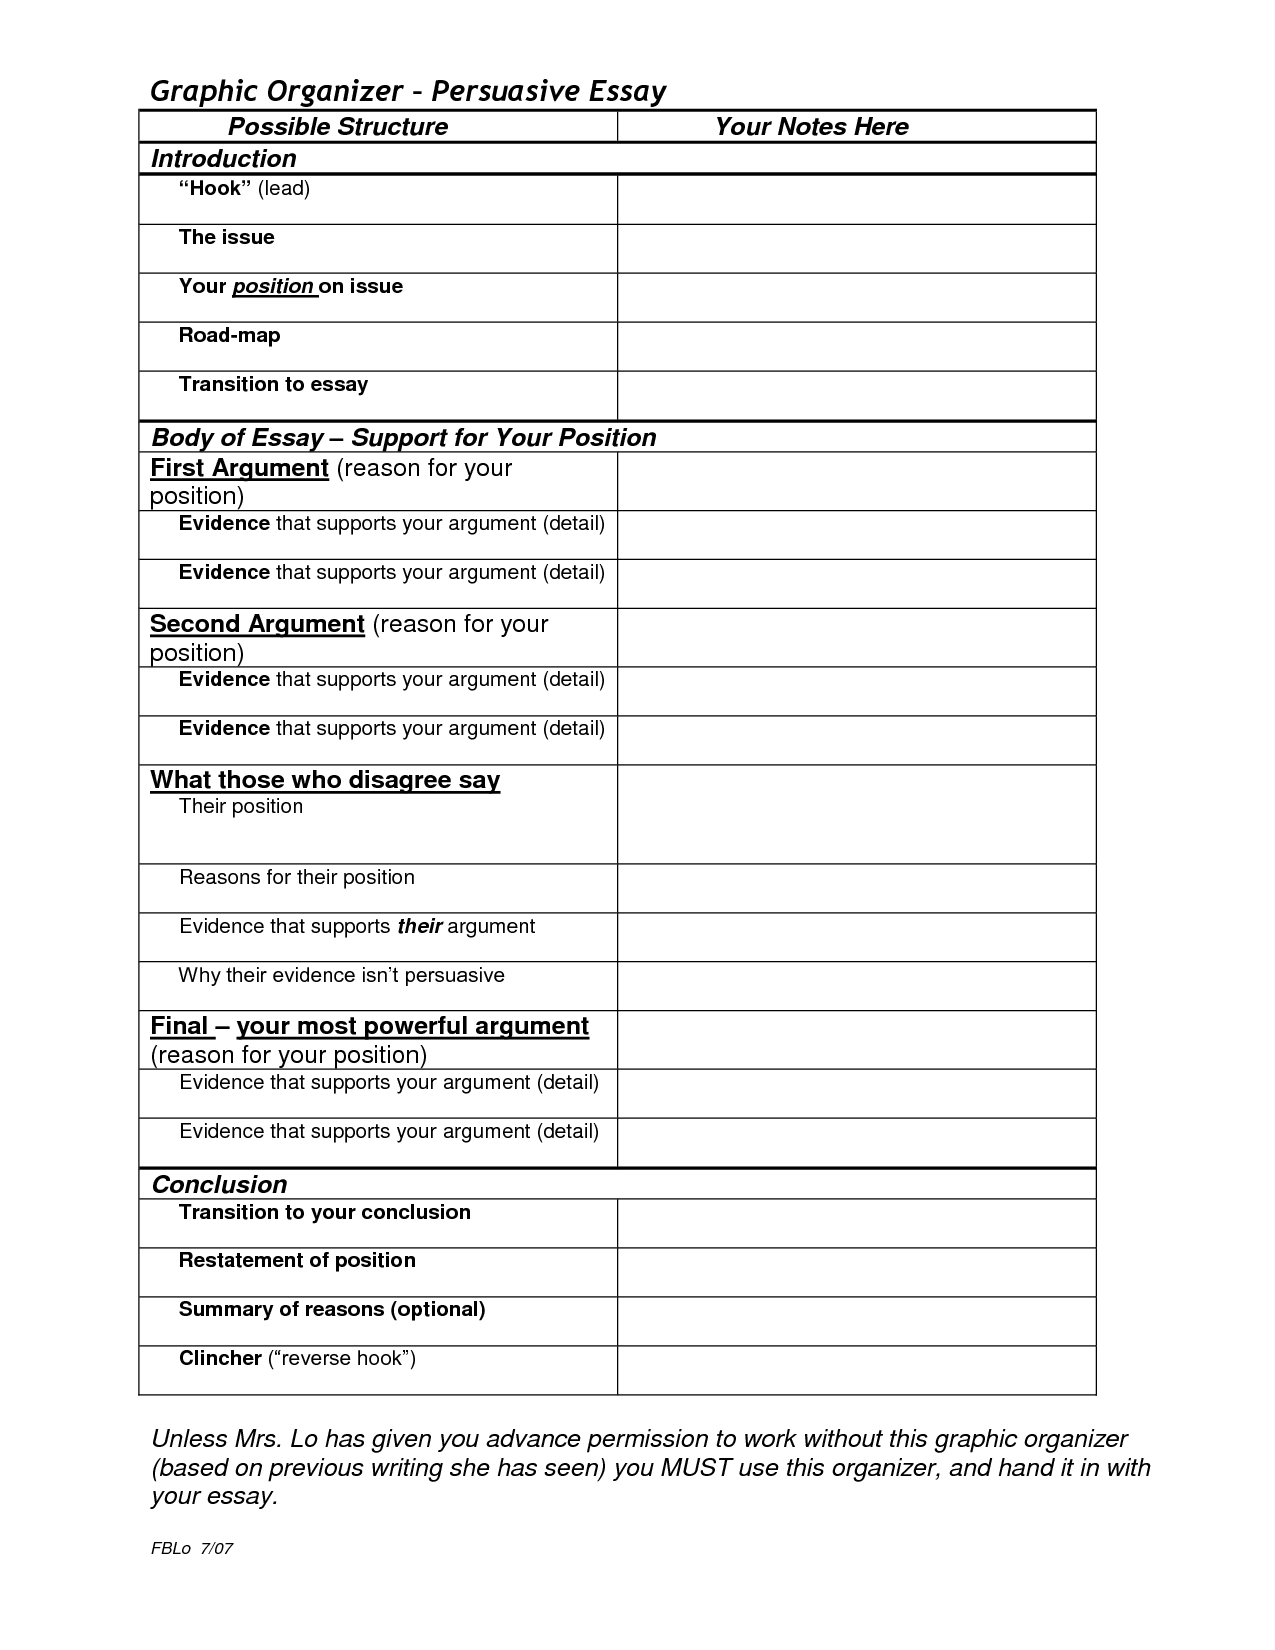 Esol Tutor Sample Resume How Persuasive Essay Writing Format Outline Example Download Graphic .